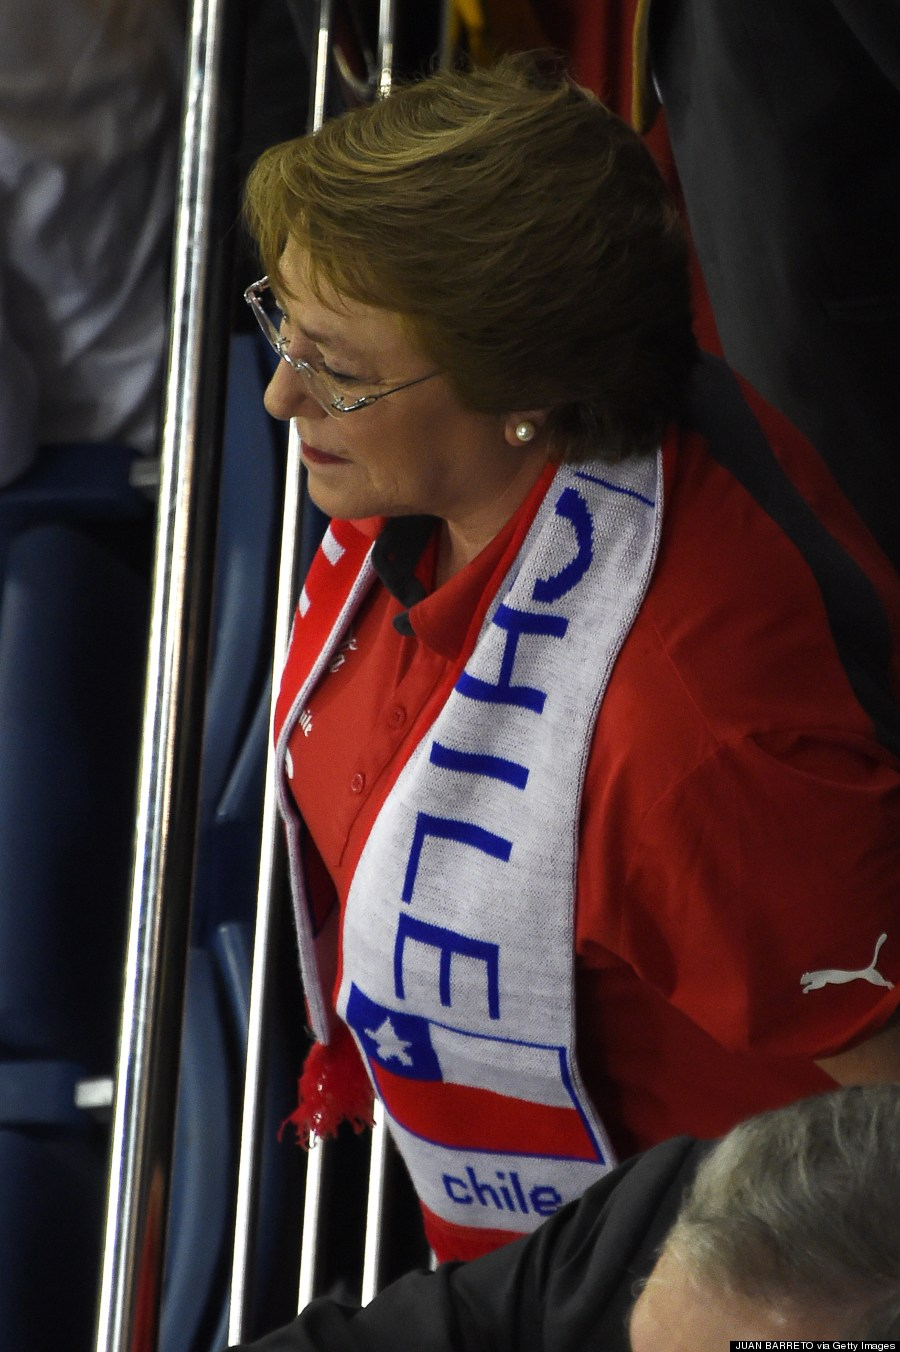 chile president world cup